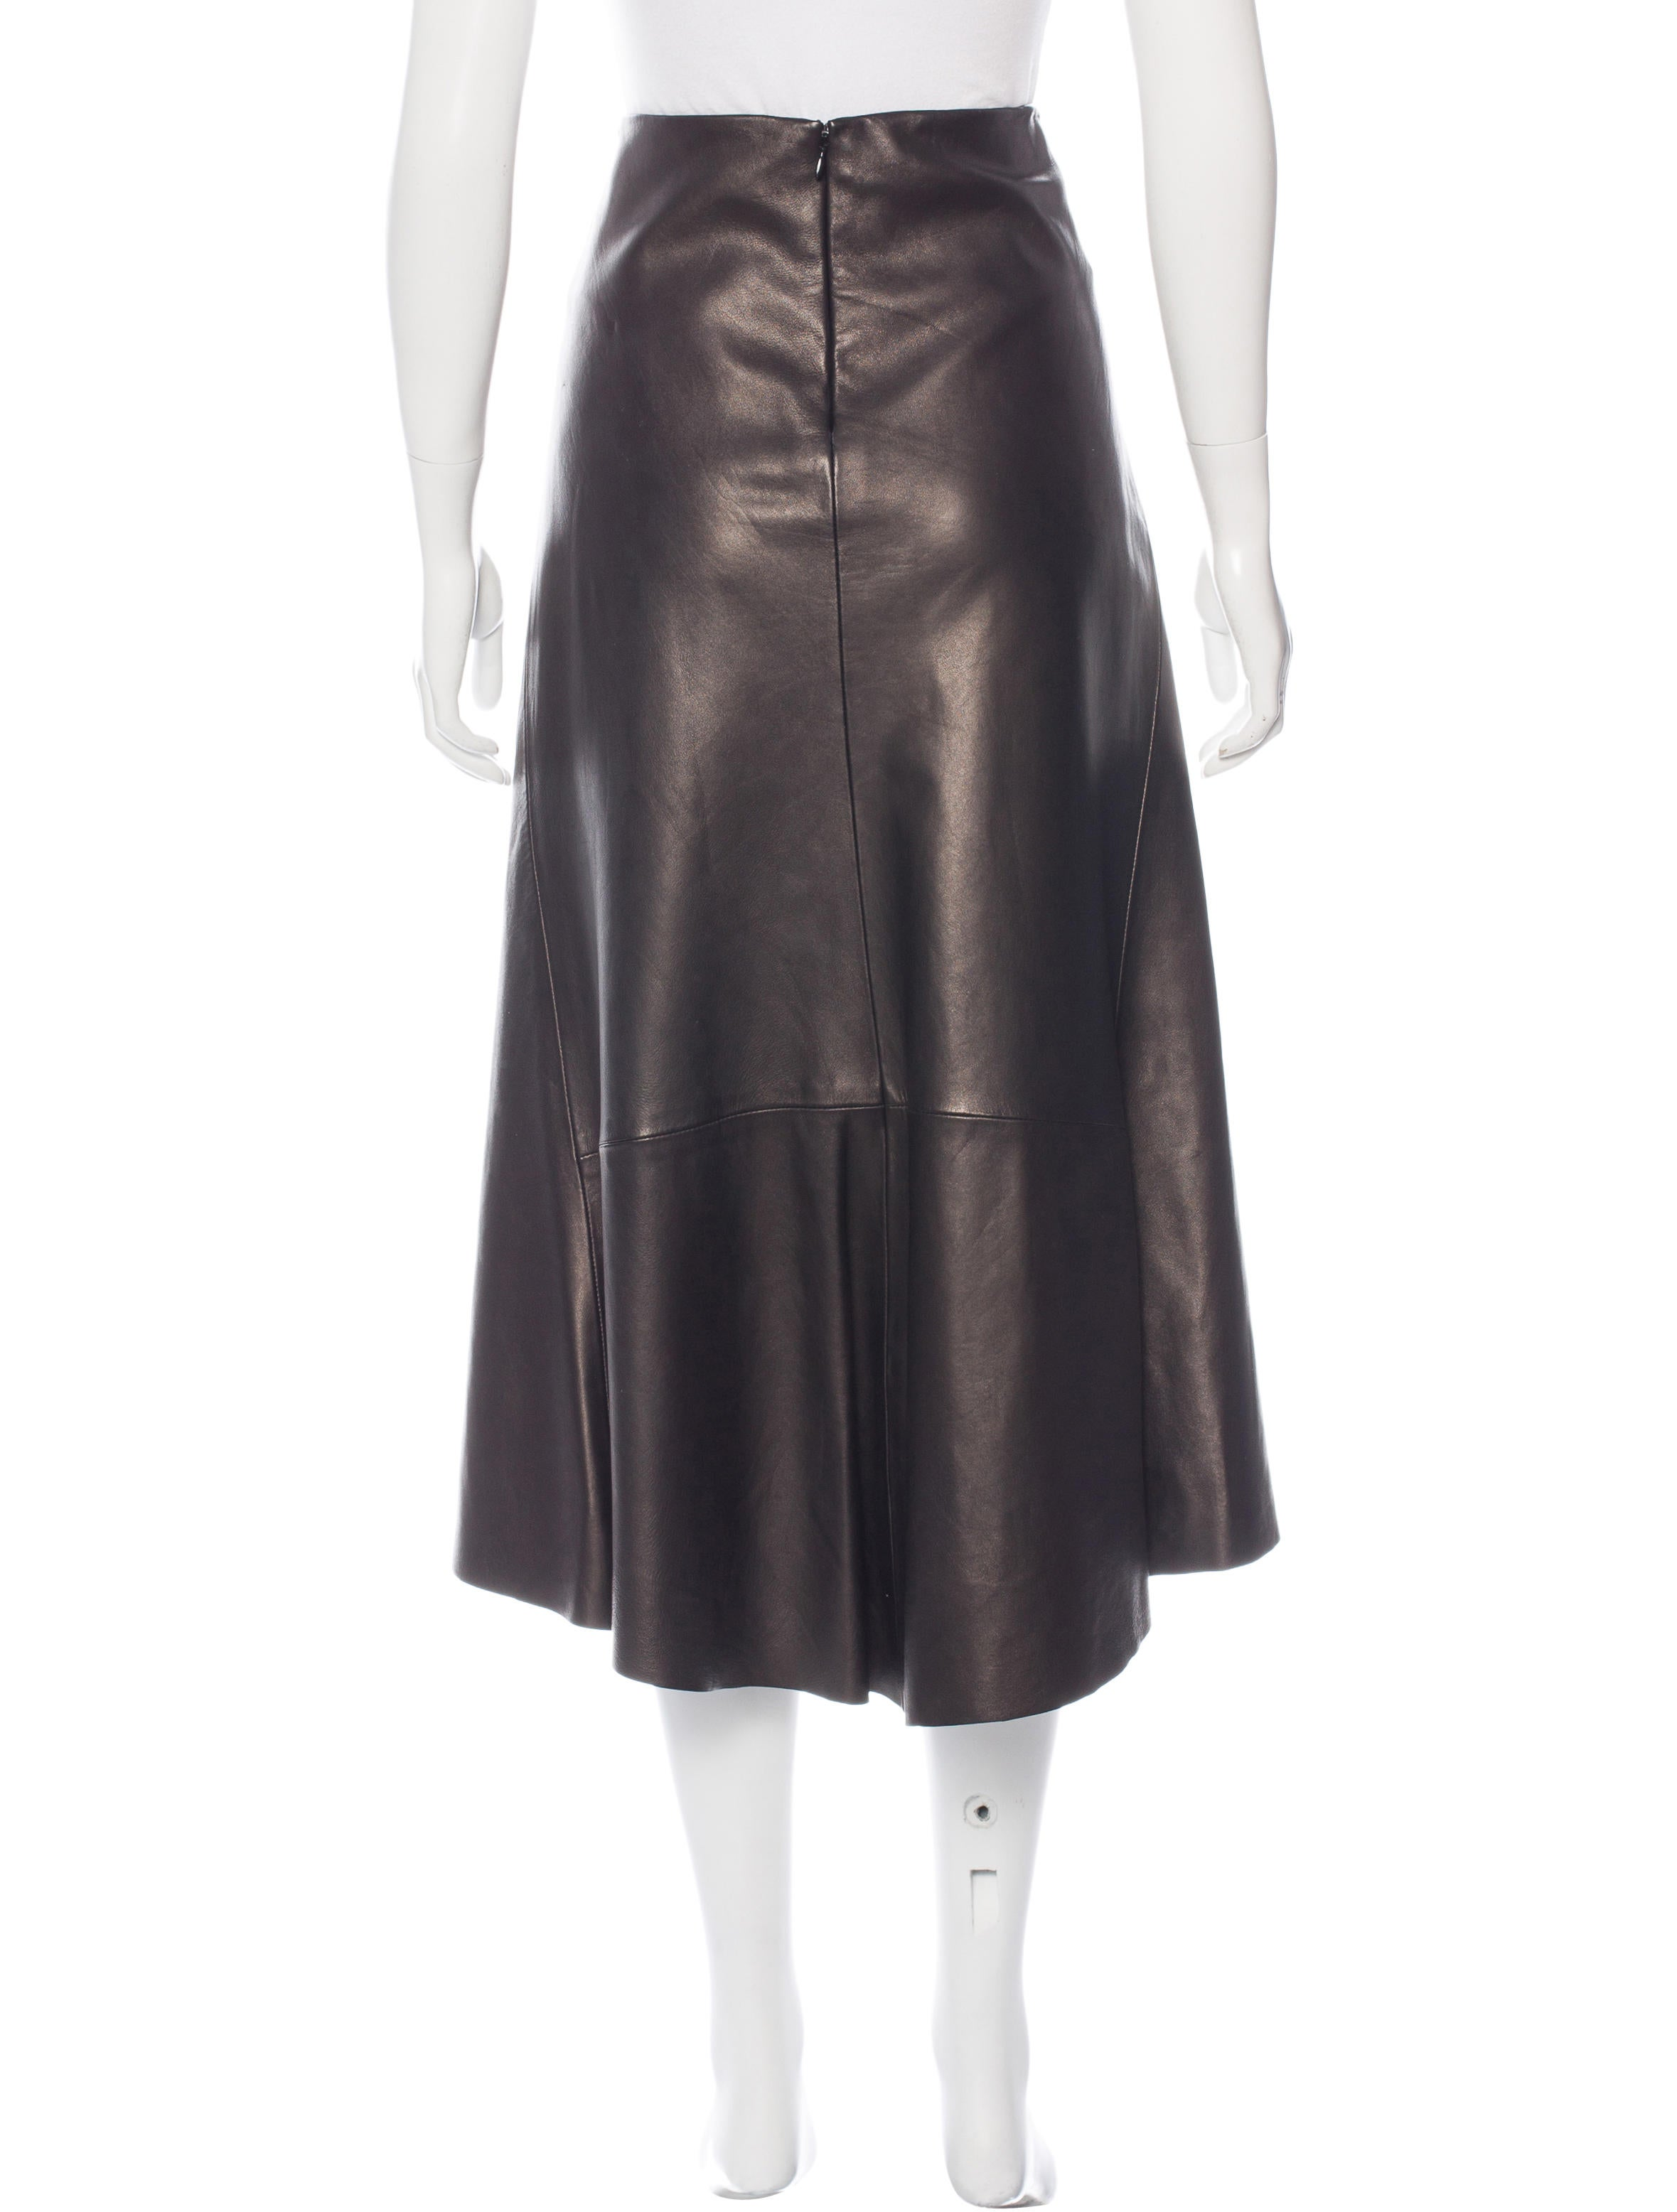 dkny leather a line skirt clothing wdk20085 the realreal